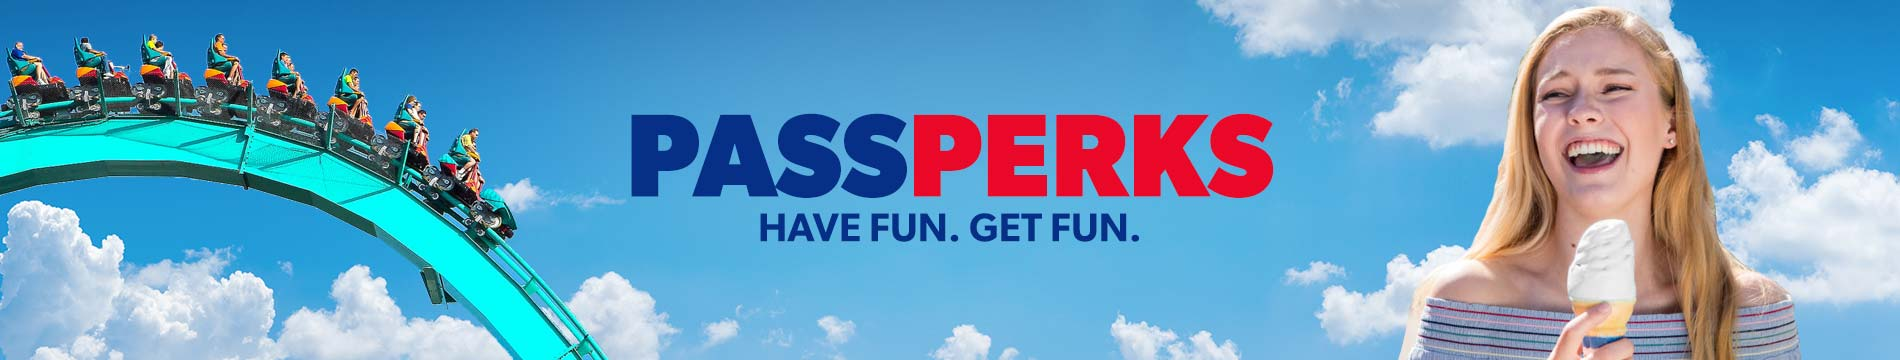 Pass Perks Loyalty Program at Canada's Wonderland